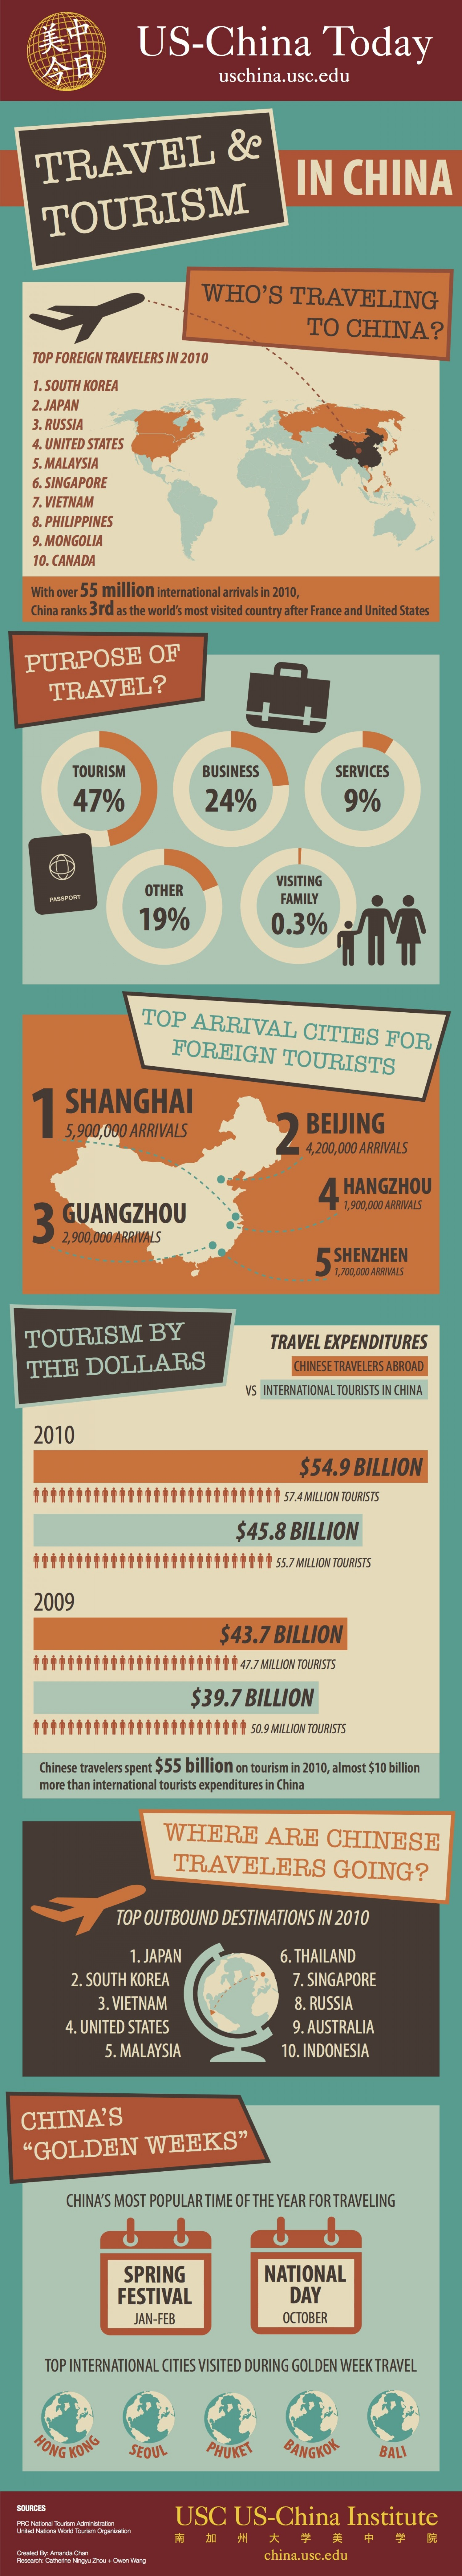 2. Travel and Tourism in China